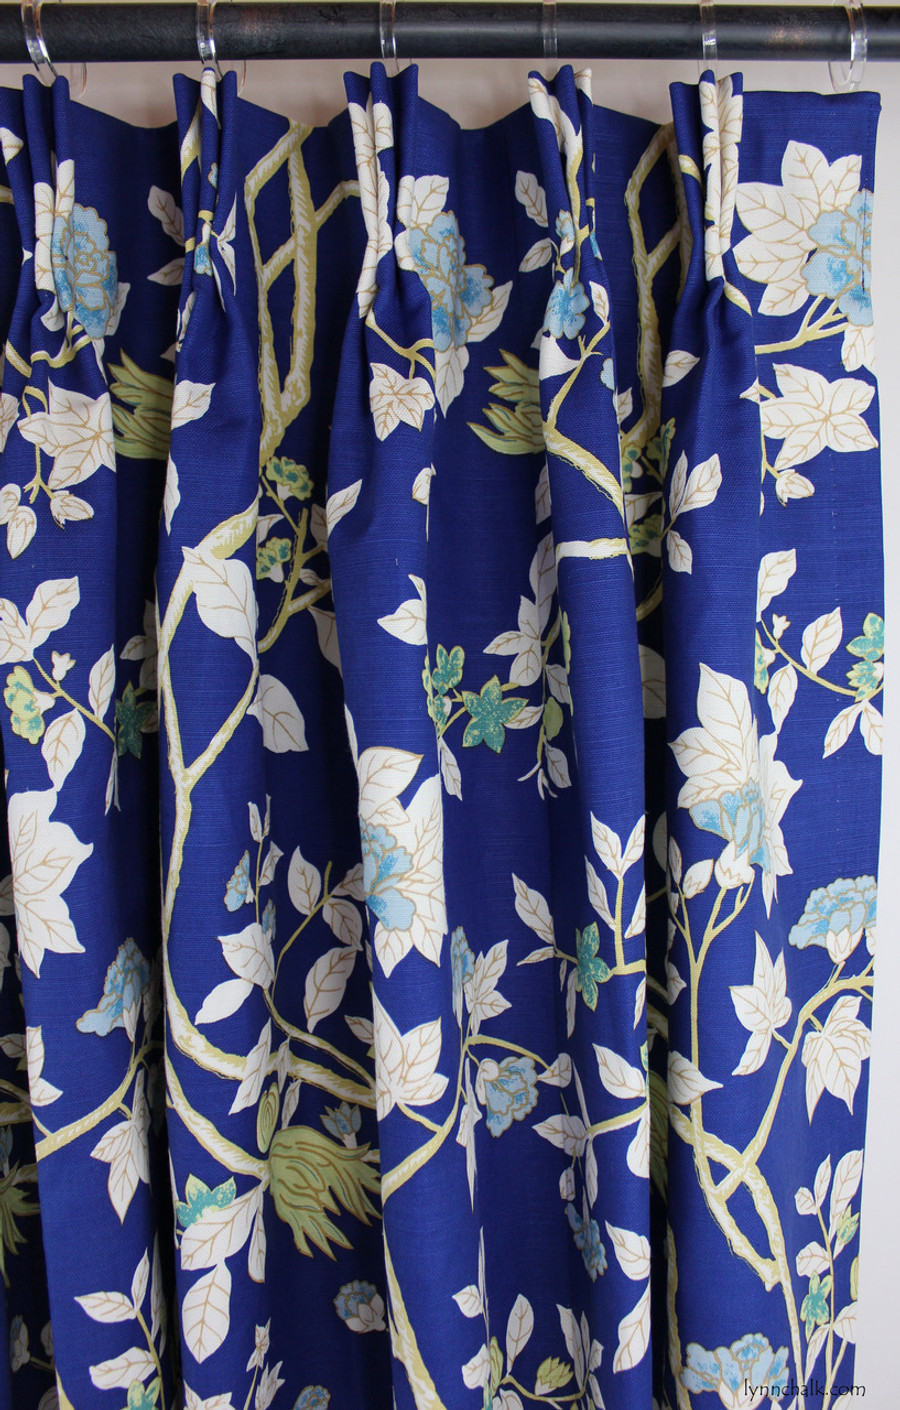 Custom Drapes in Quadrille Happy Garden New Navy on Tint